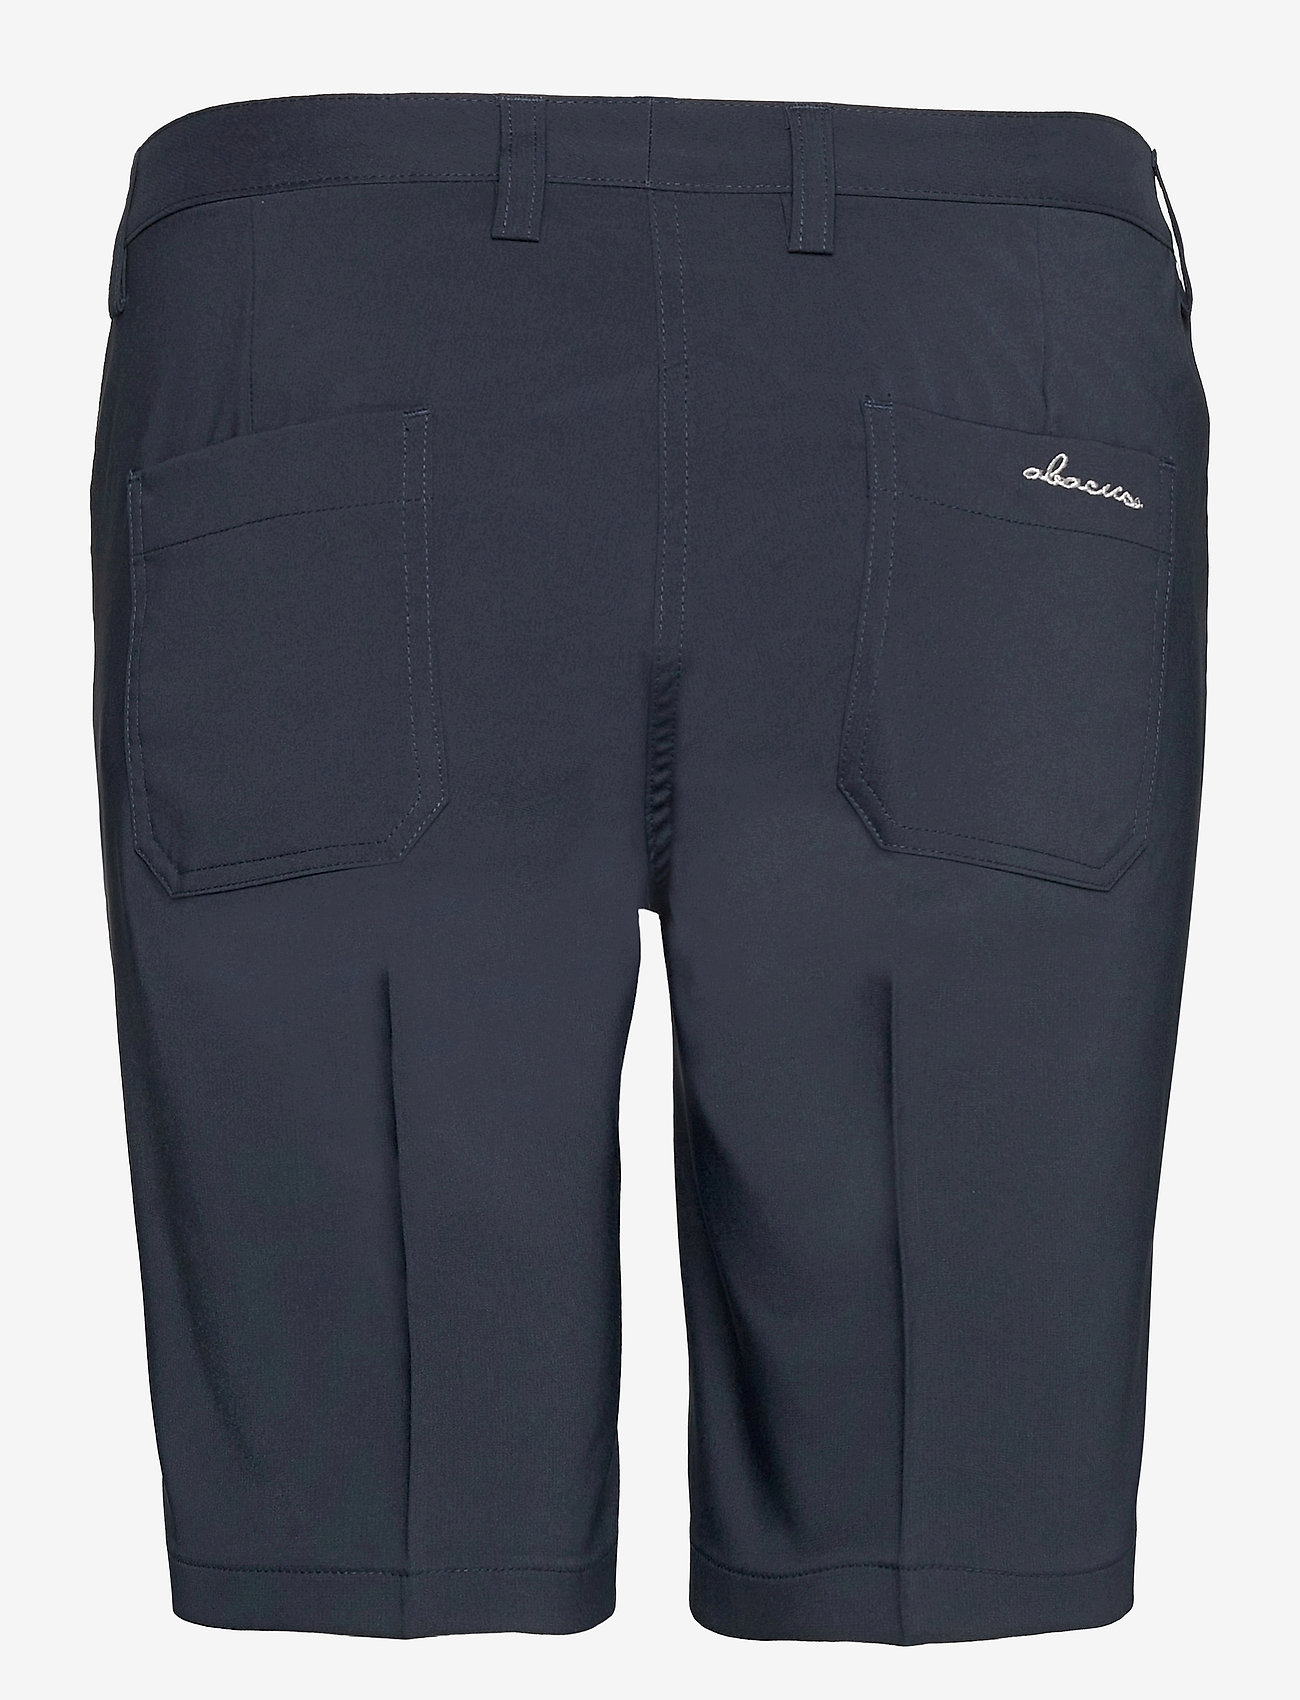 Abacus - Lds Cleek stretch shorts 46cm - golfbroeken - navy - 1